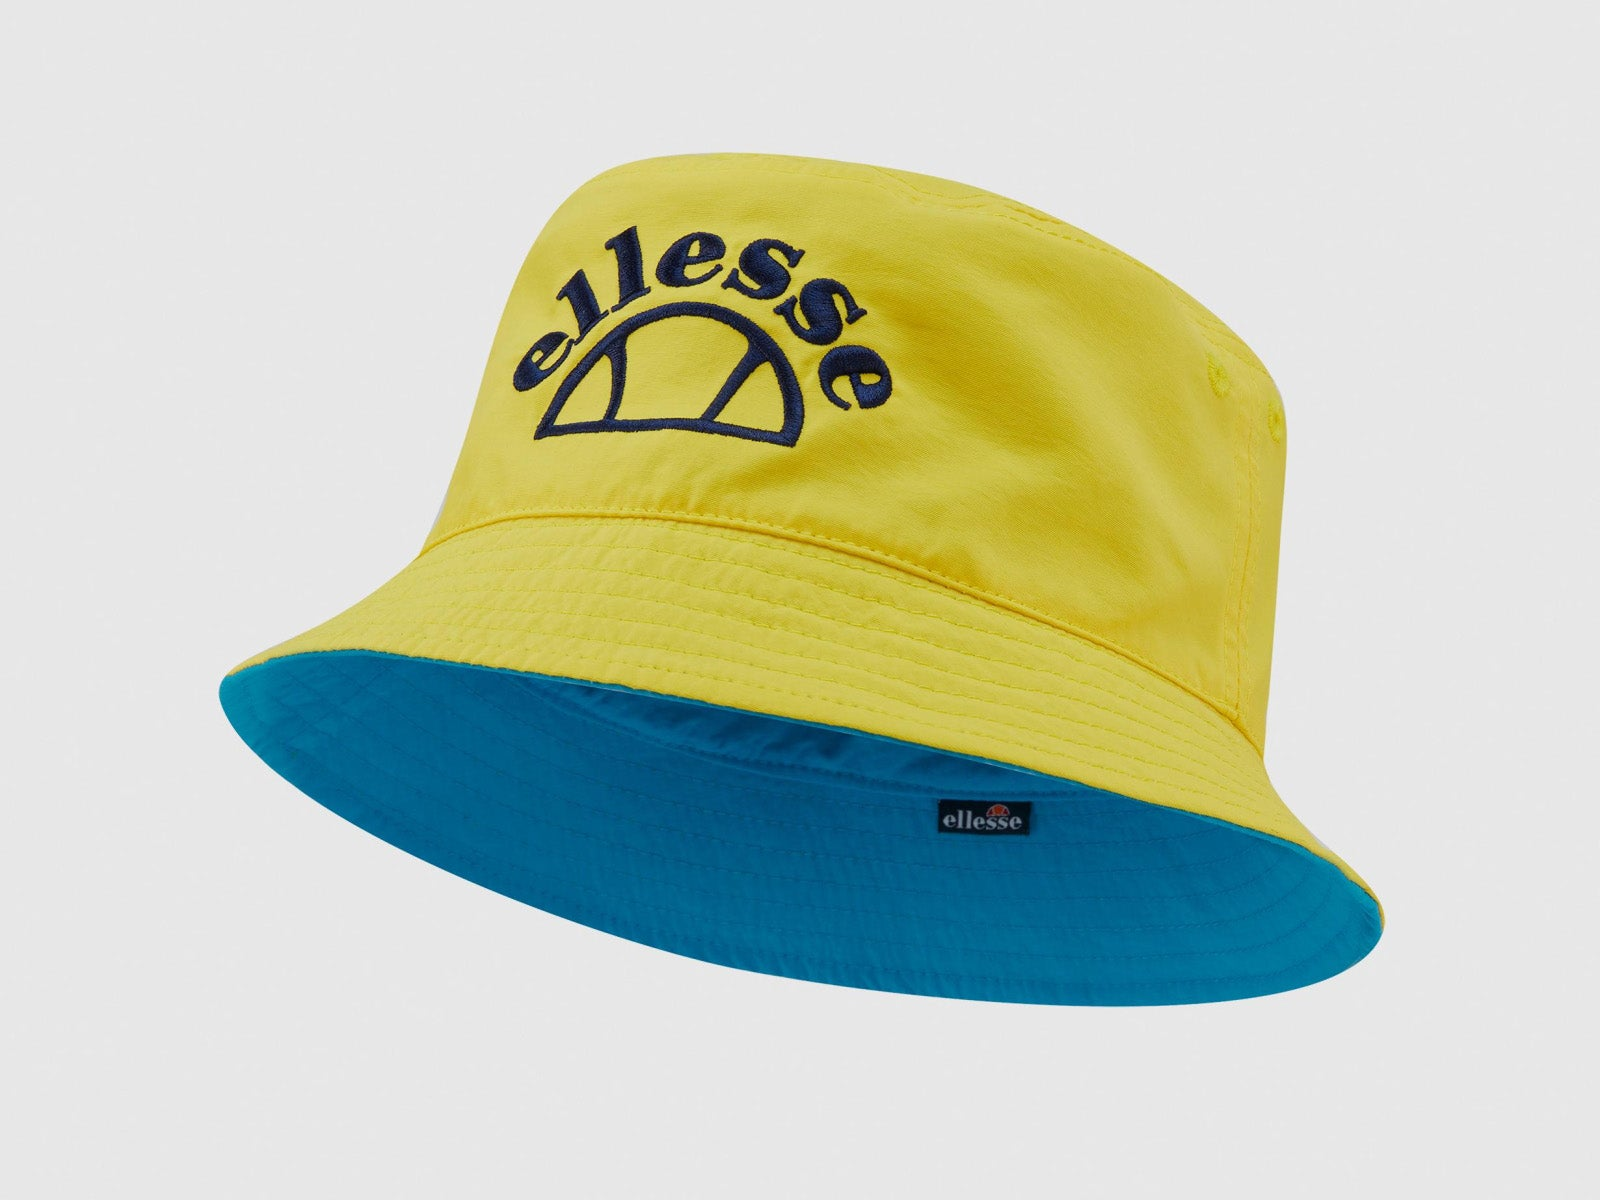 8e11347a0 Best men's summer hats: Caps, bucket hats and fedoras that are ...